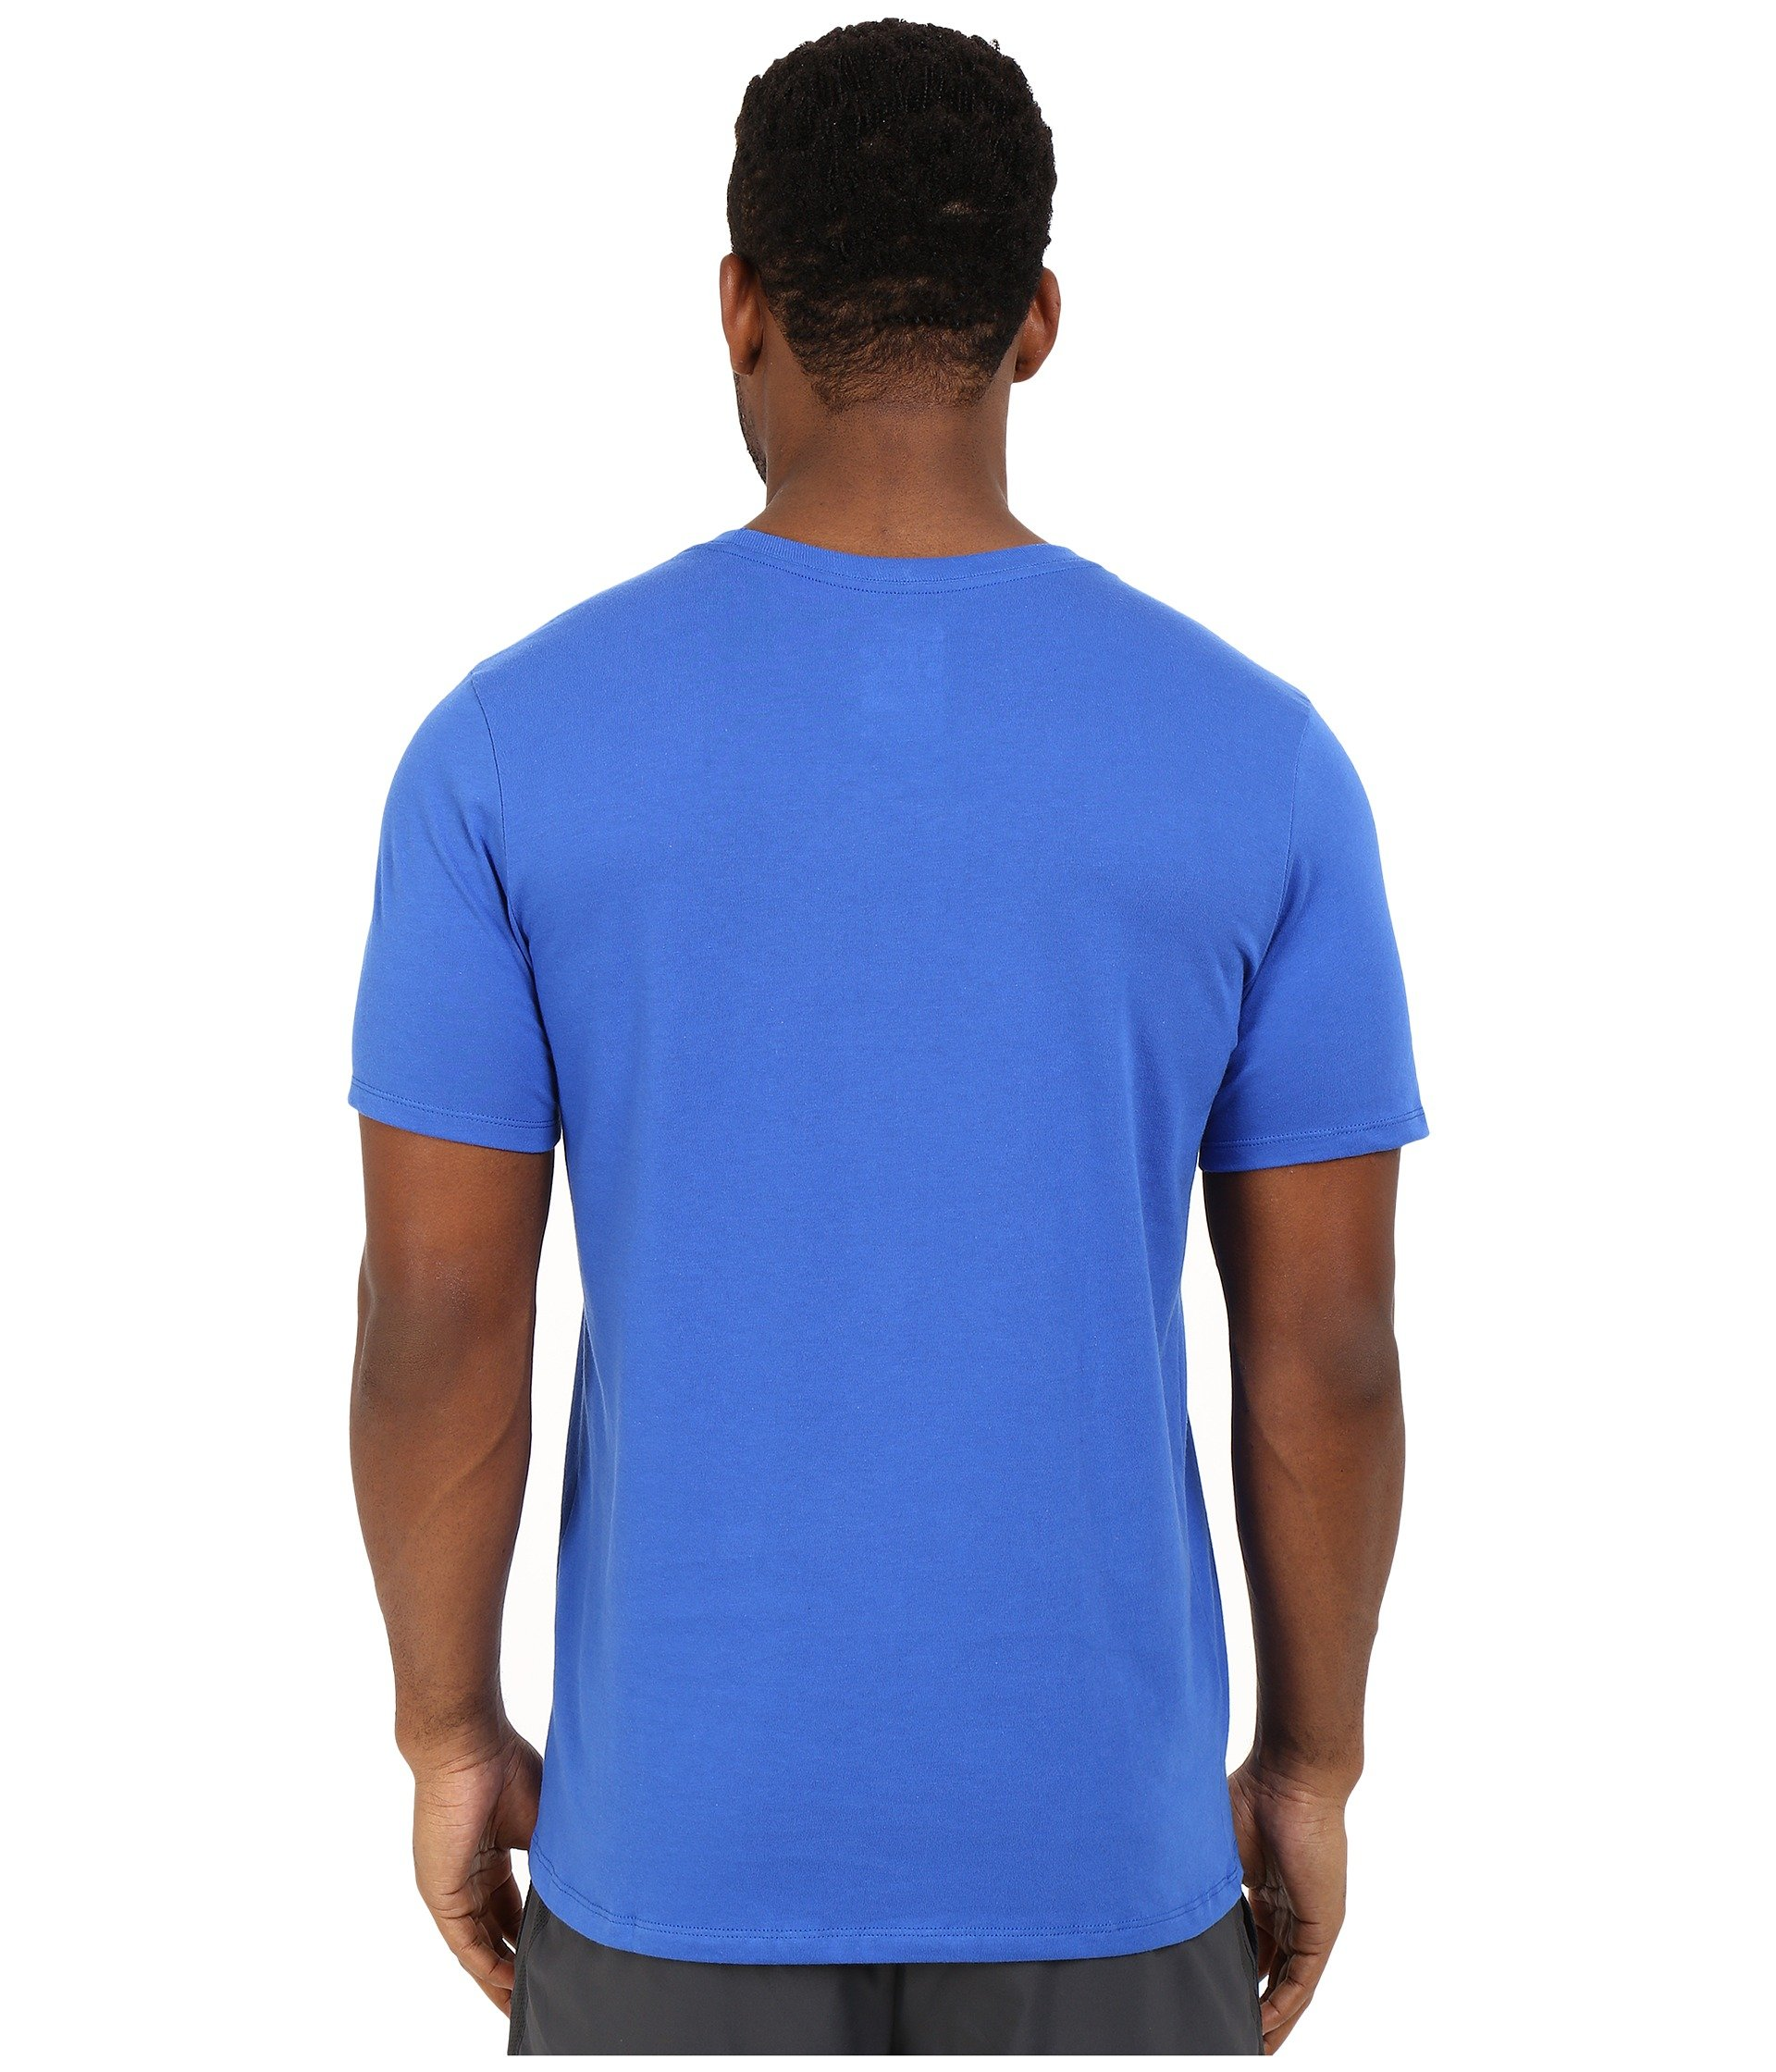 Nike T white game Dri shirt 2 Royal Version Royal fit™ 0 Game rqnrXUFw